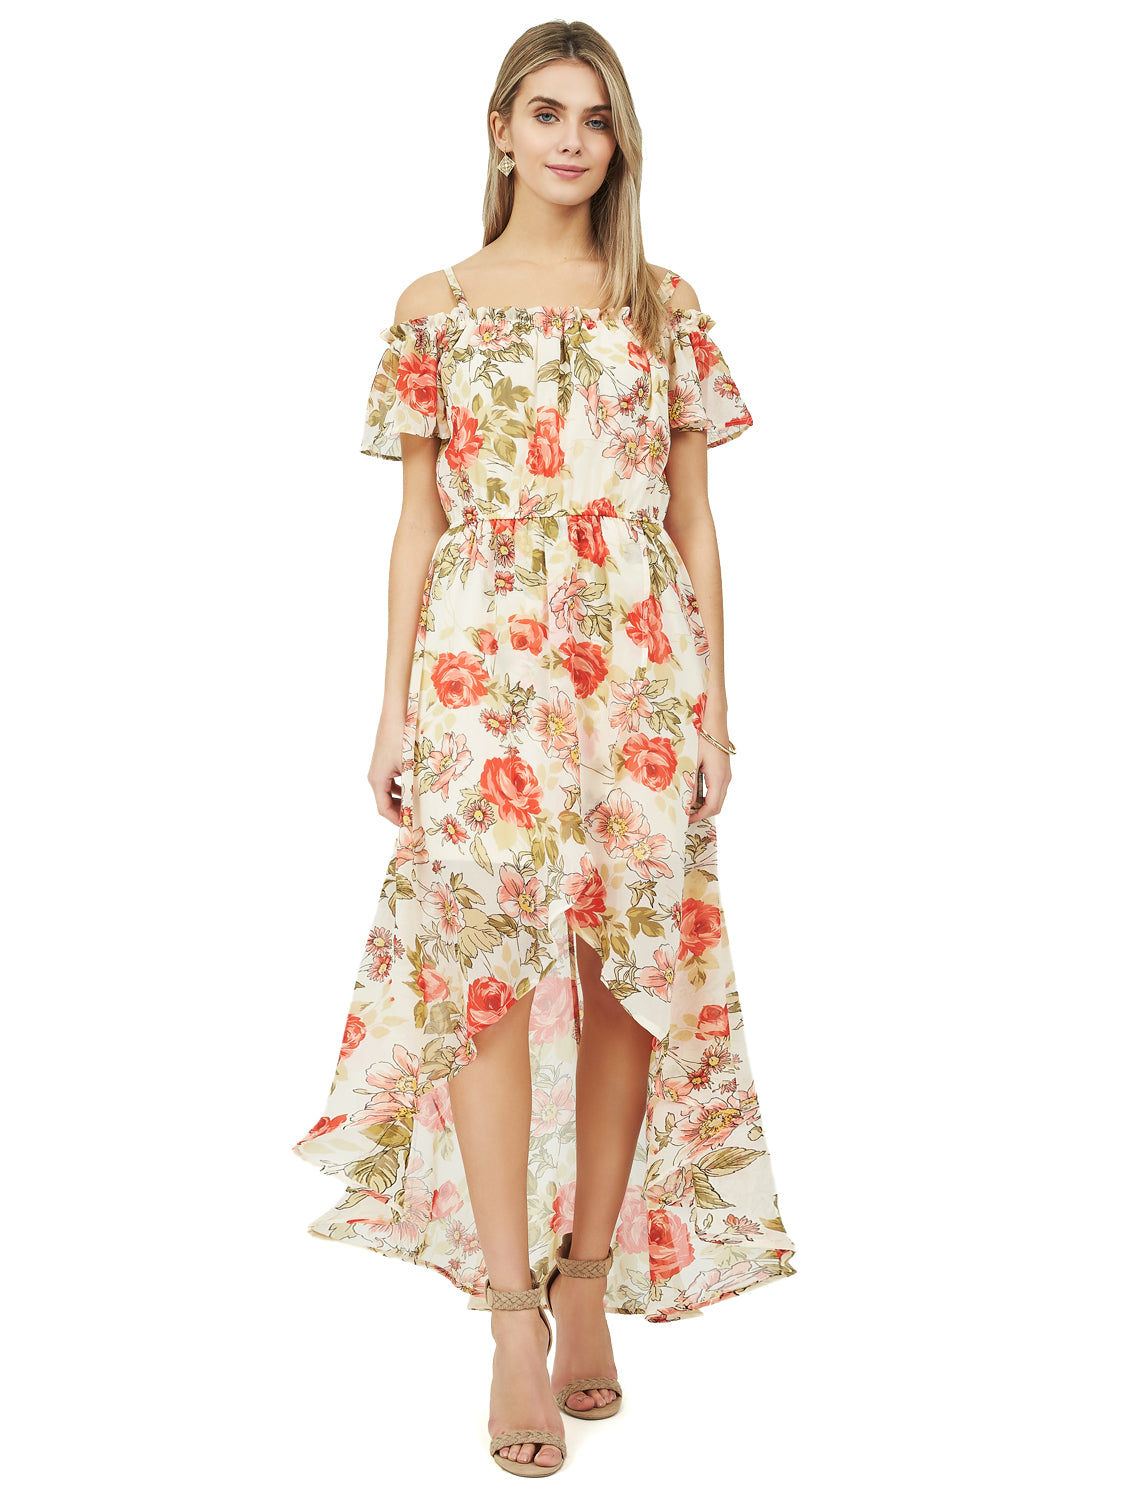 981c9fc68c921 Printed Chiffon Cold-Shoulder Dress